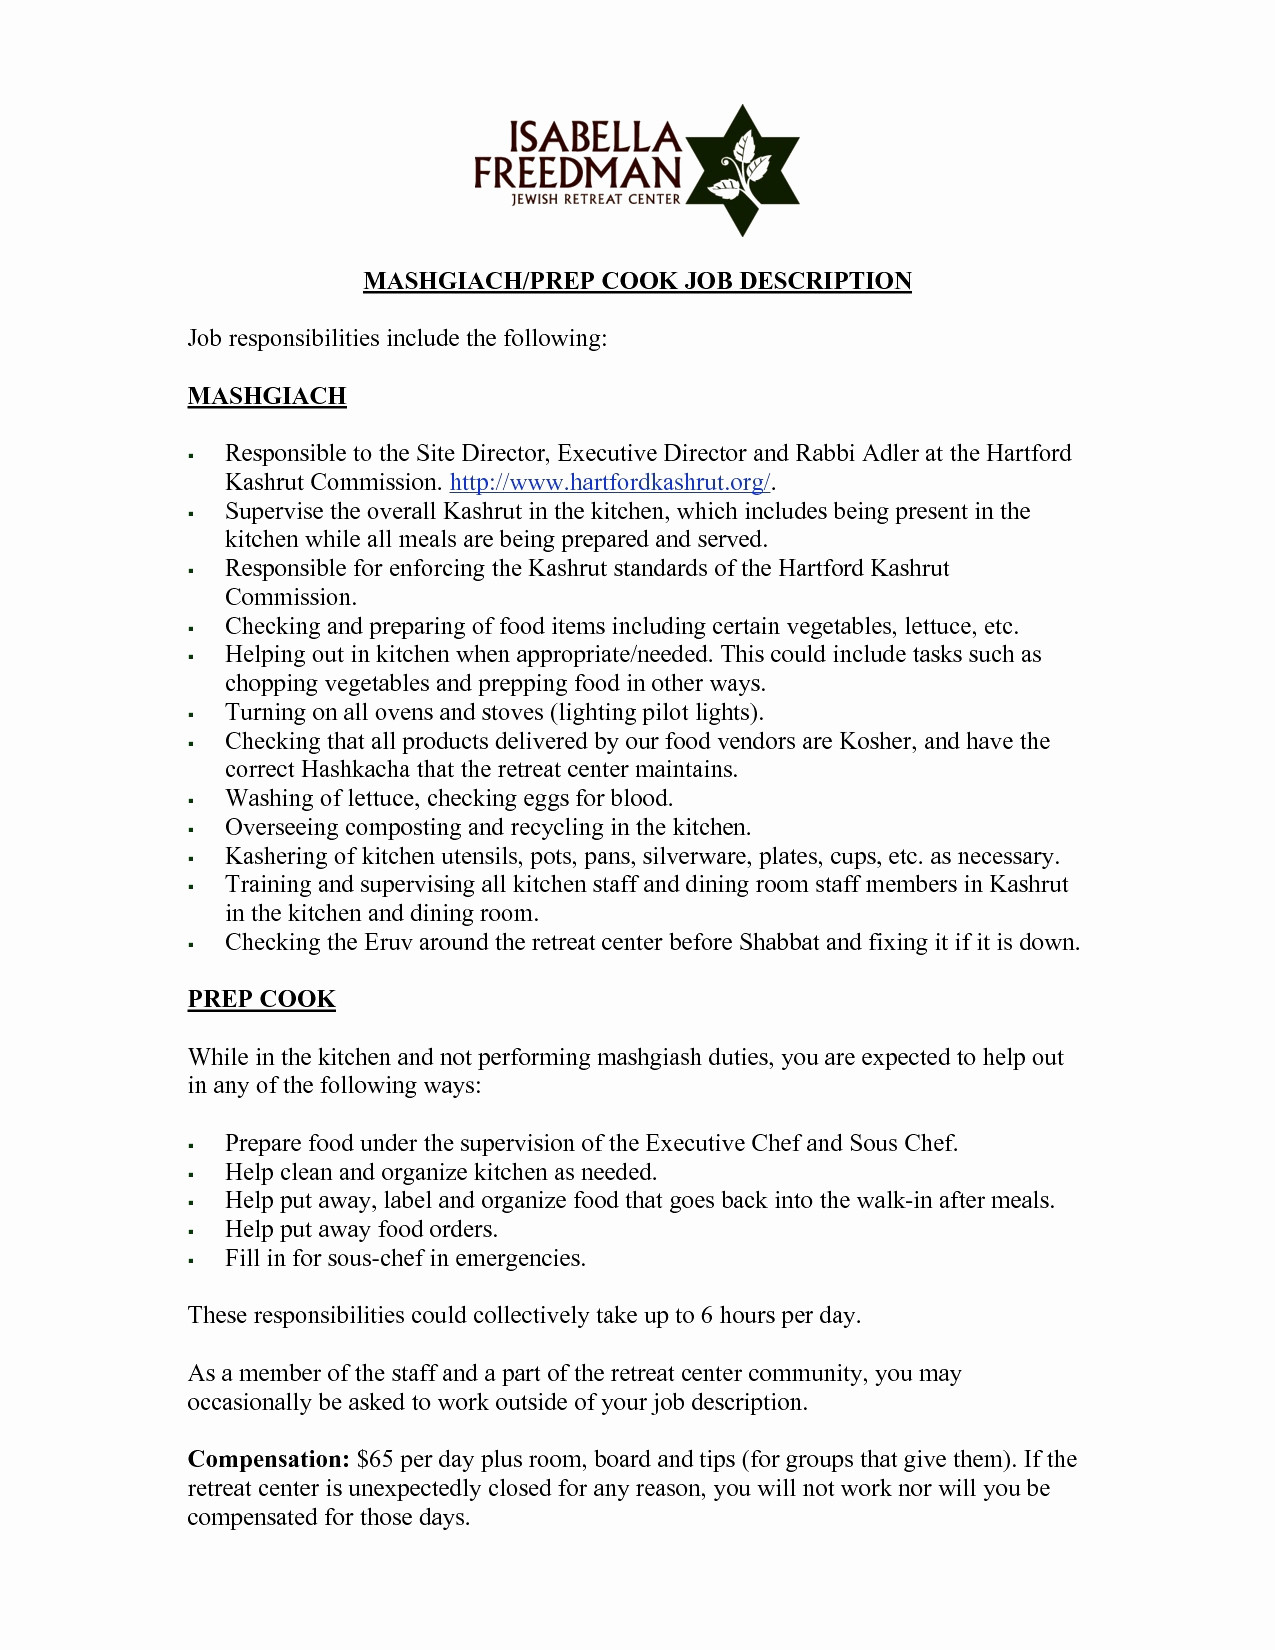 Expert Opinion Letter Template - Get Resume Done Professionally Simple Resume and Cover Letter